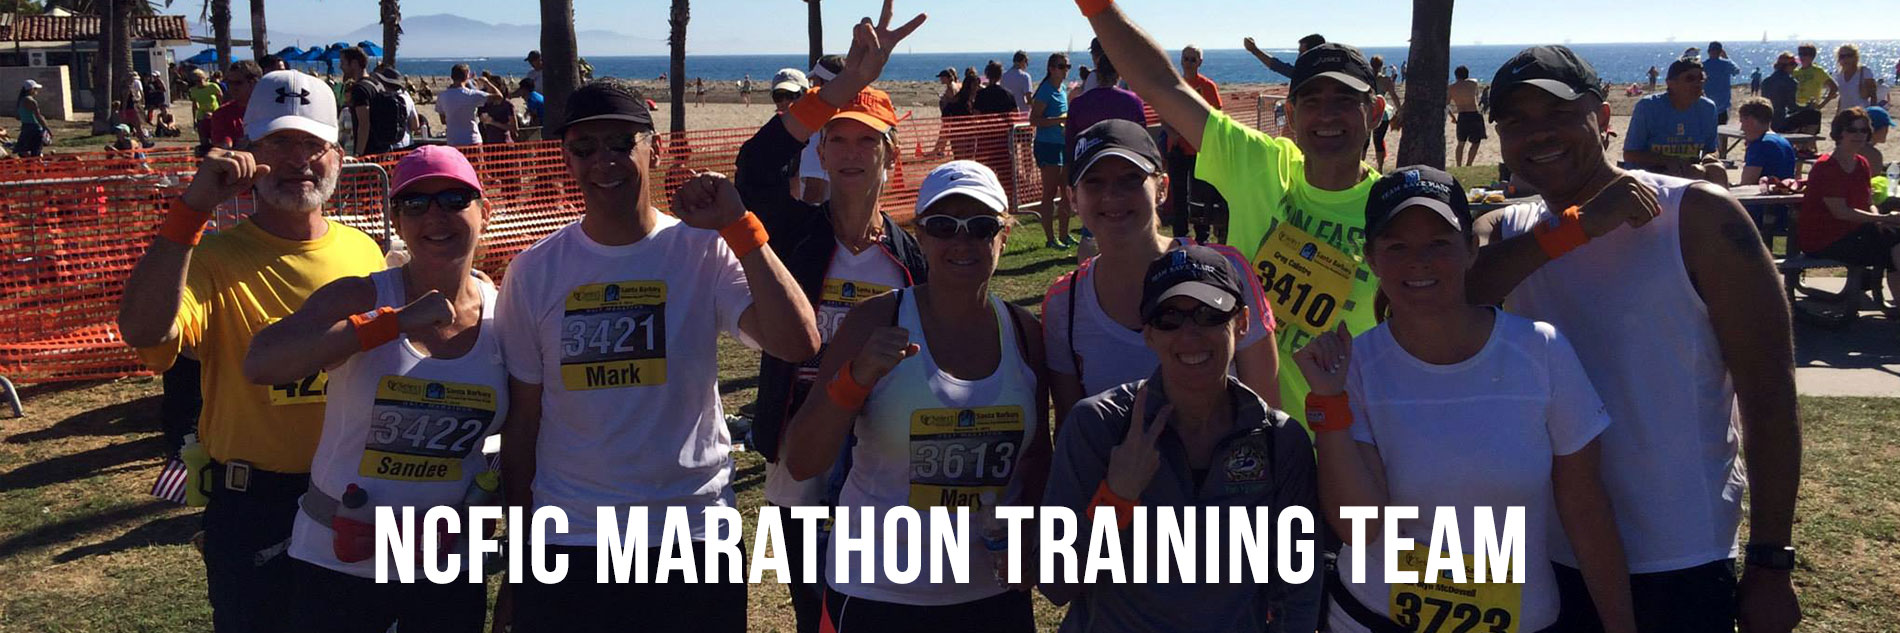 NCFIC Marathon Training Team